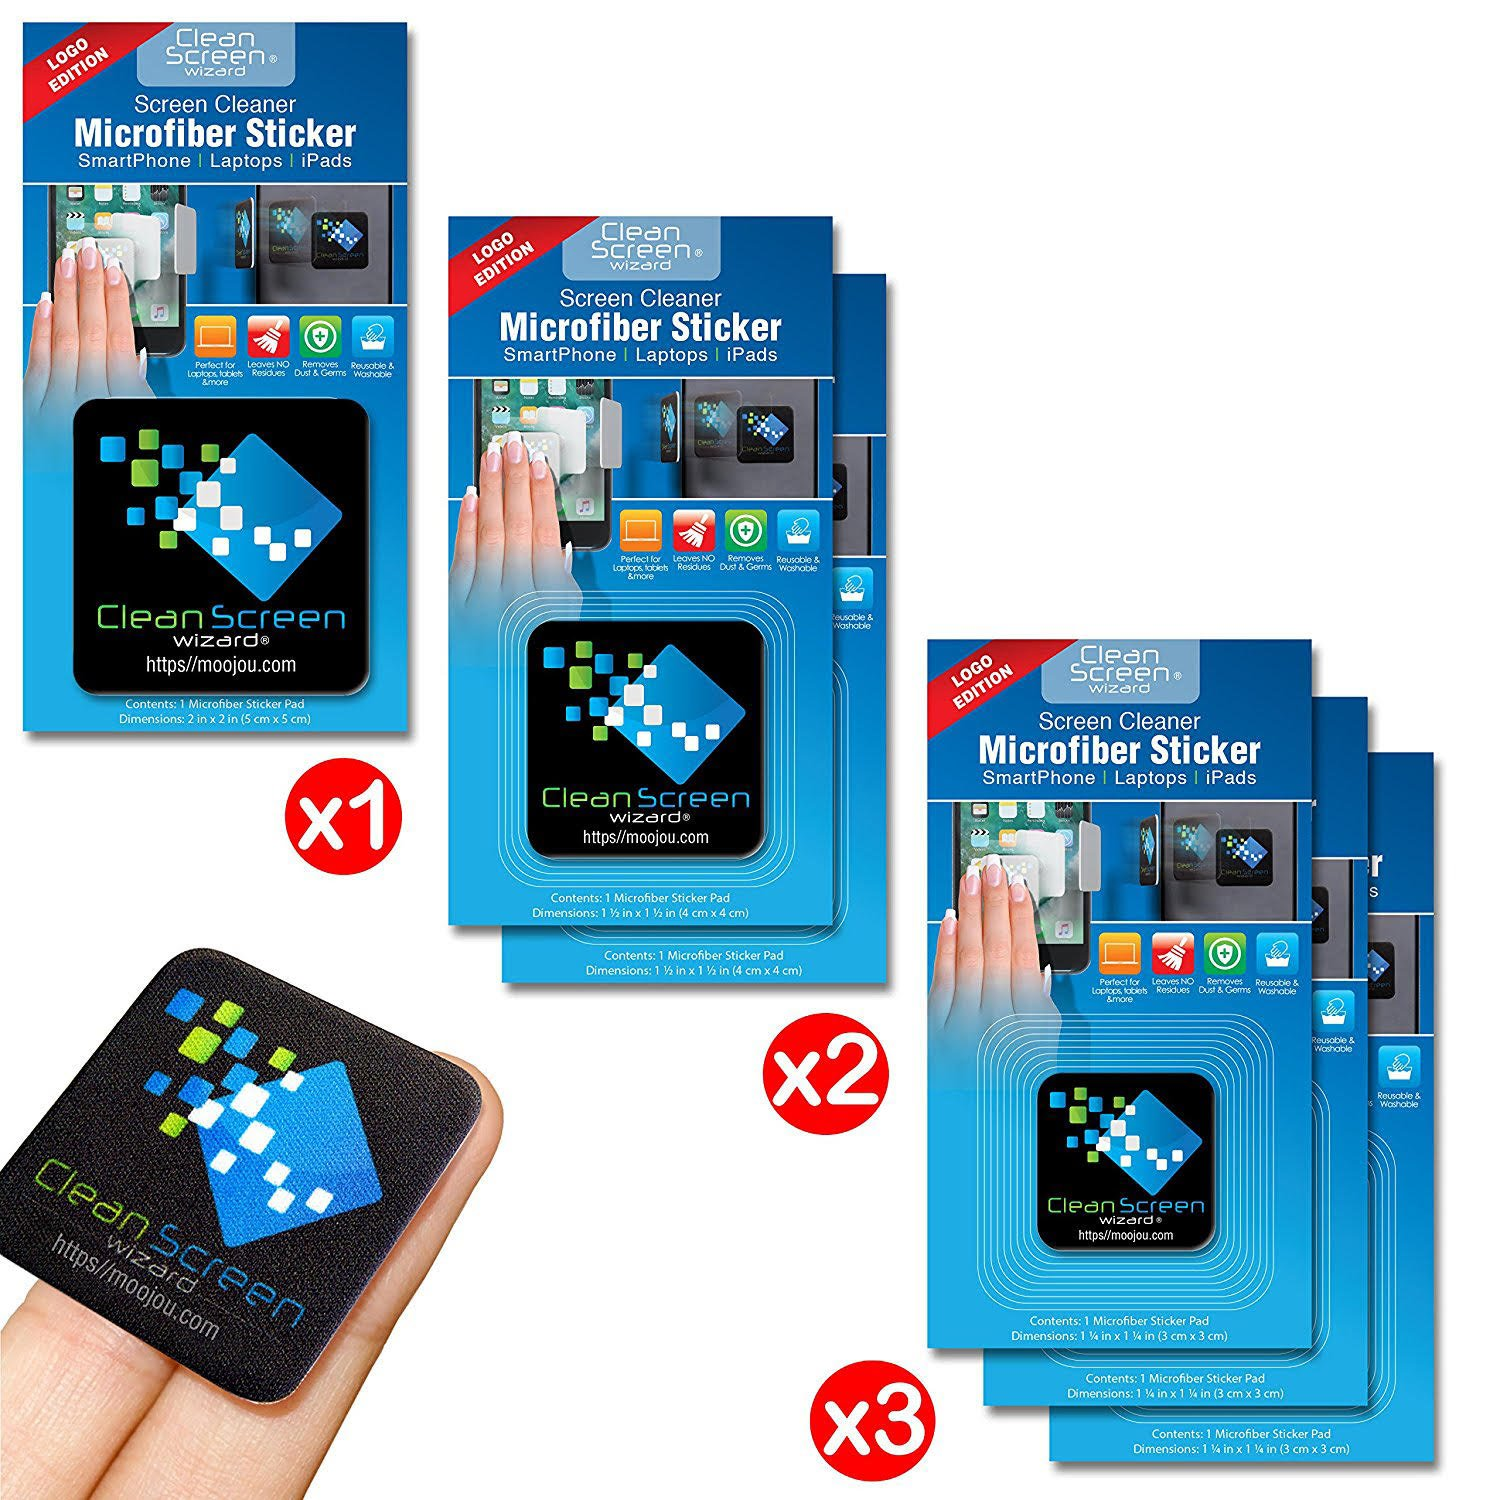 Clean Screen Wizard Microfiber Screen Cleaner Sticker, Handy Screen Cleaning Kit, 6 Pack Bundle Cleaning Stickers, 1 Large, 2 Medium, 3 Small in Black for Multi Size Screens by CLEAN SCREEN WIZARD